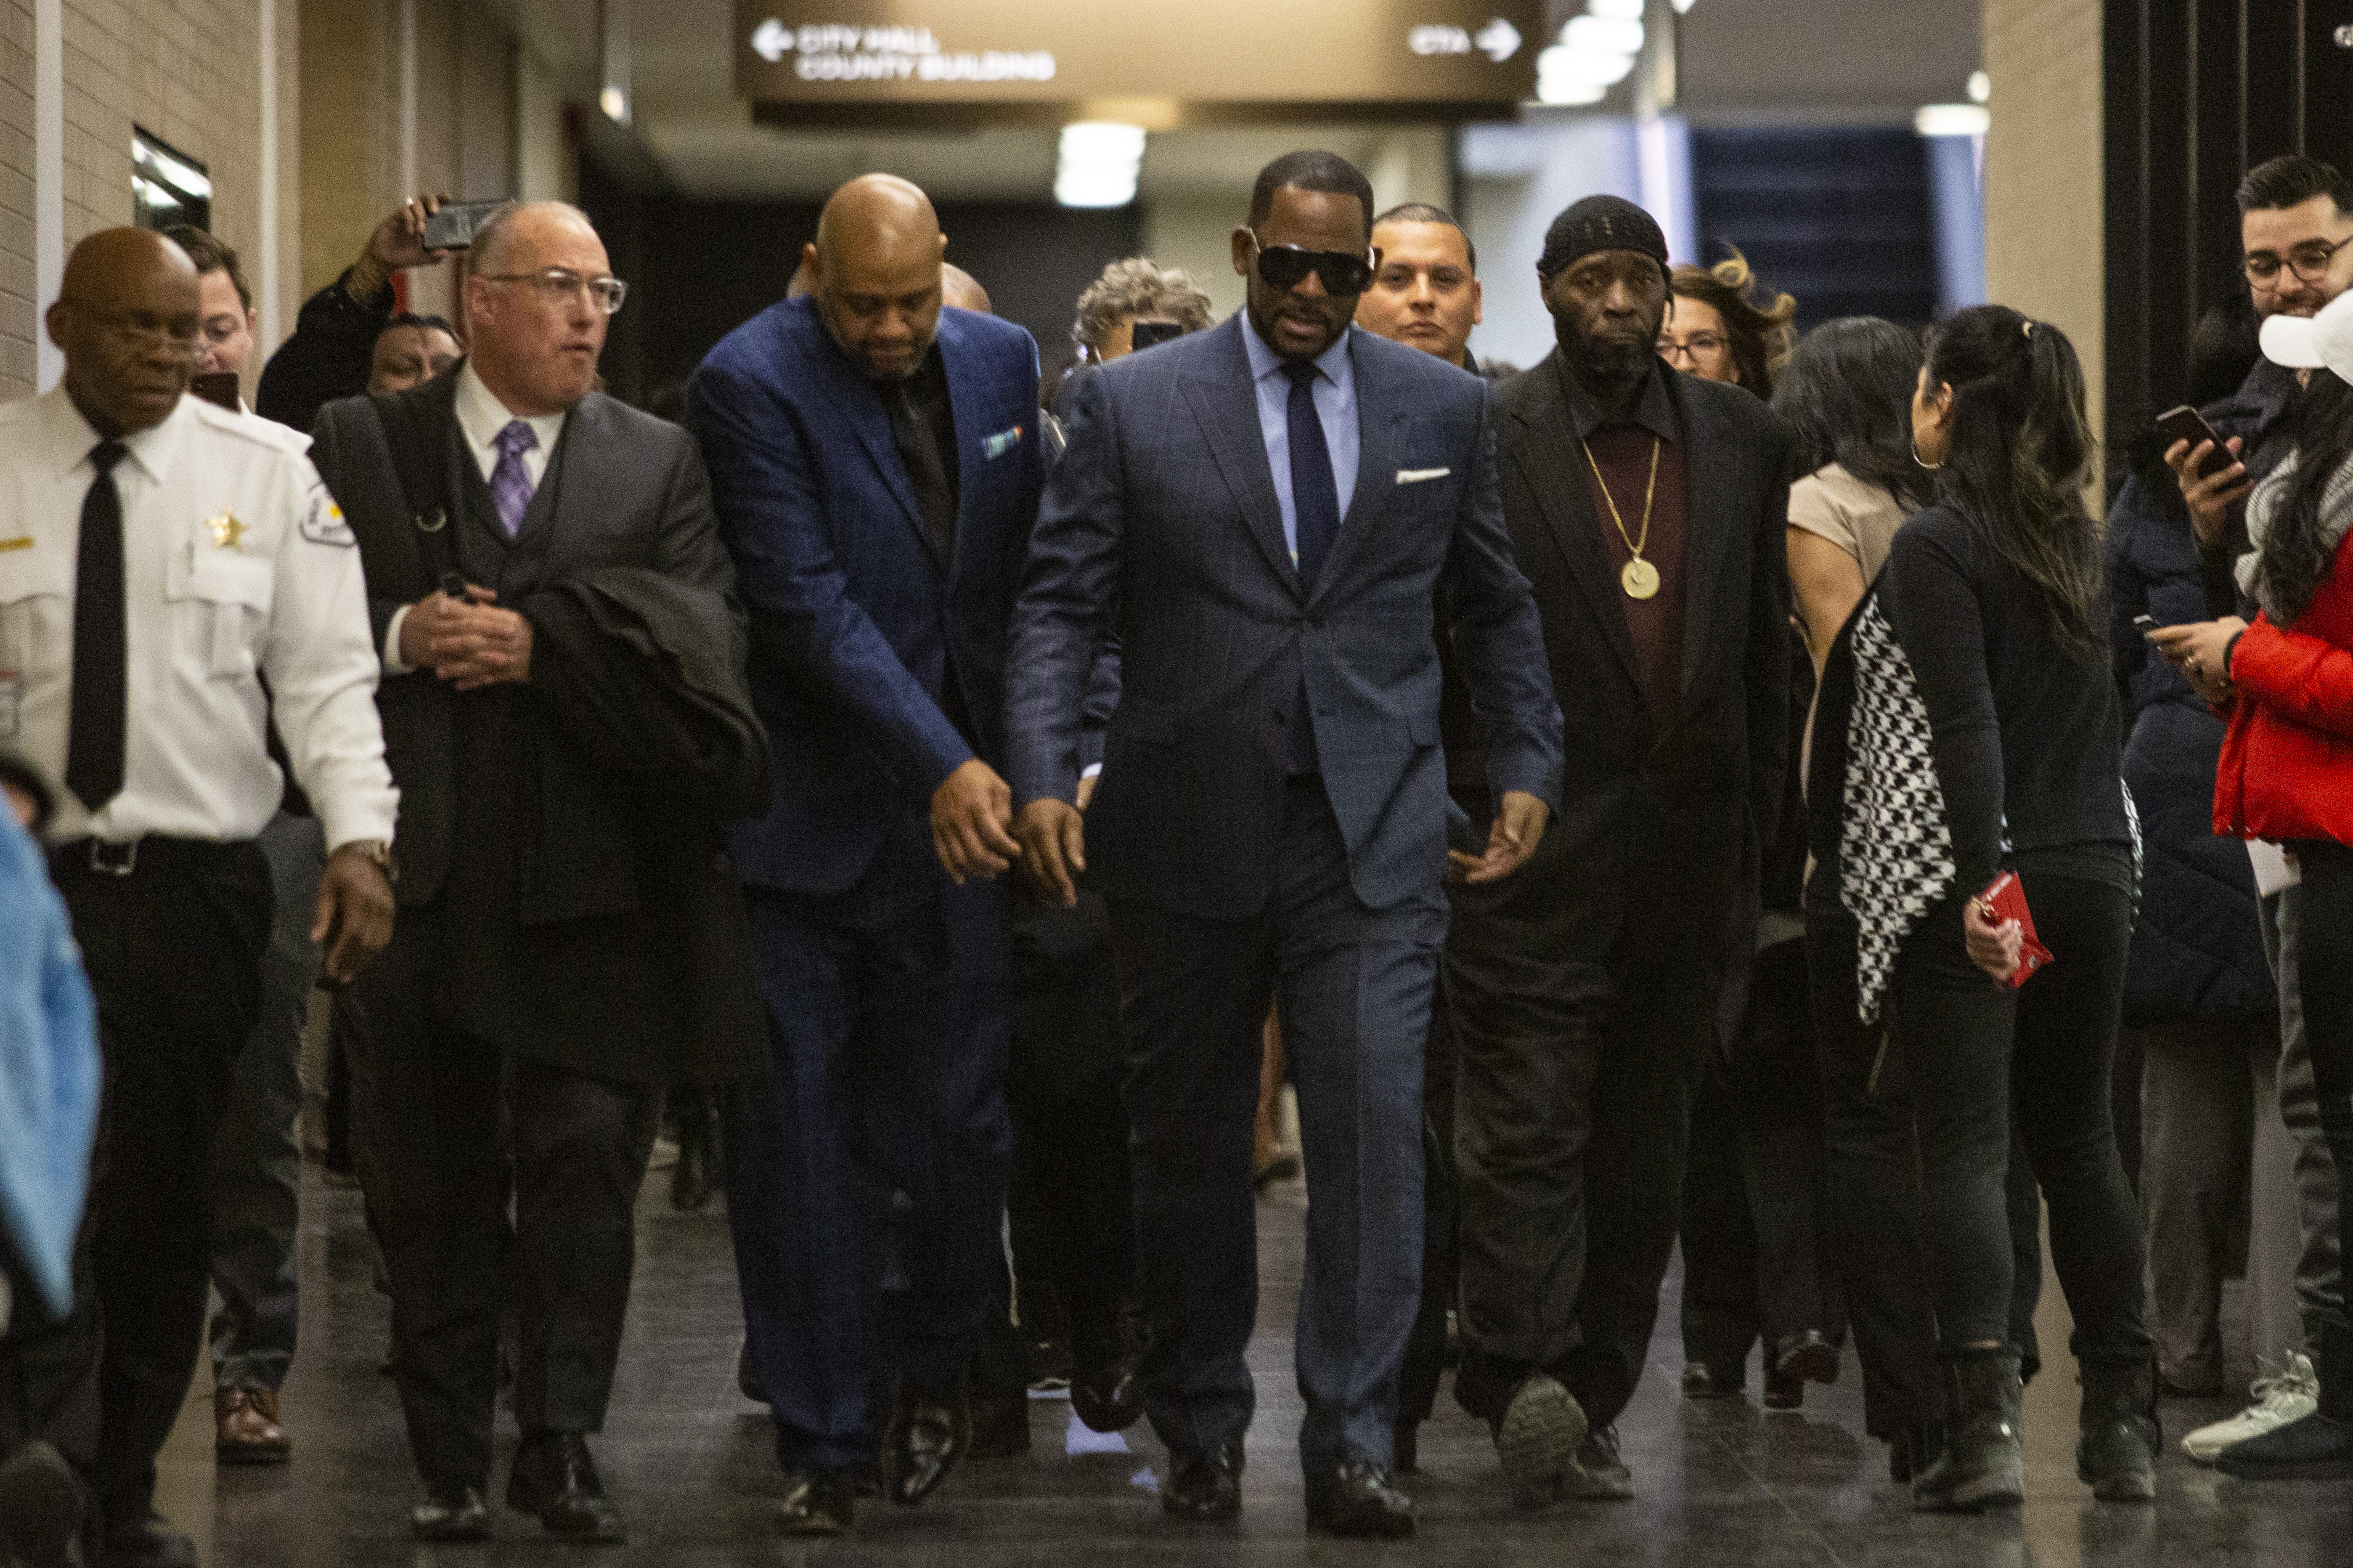 R. Kelly walks into the Daley Center in Chicago for a hearing in a child support case, Wednesday afternoon, March 6, 2019. | Ashlee Rezin/Sun-Times